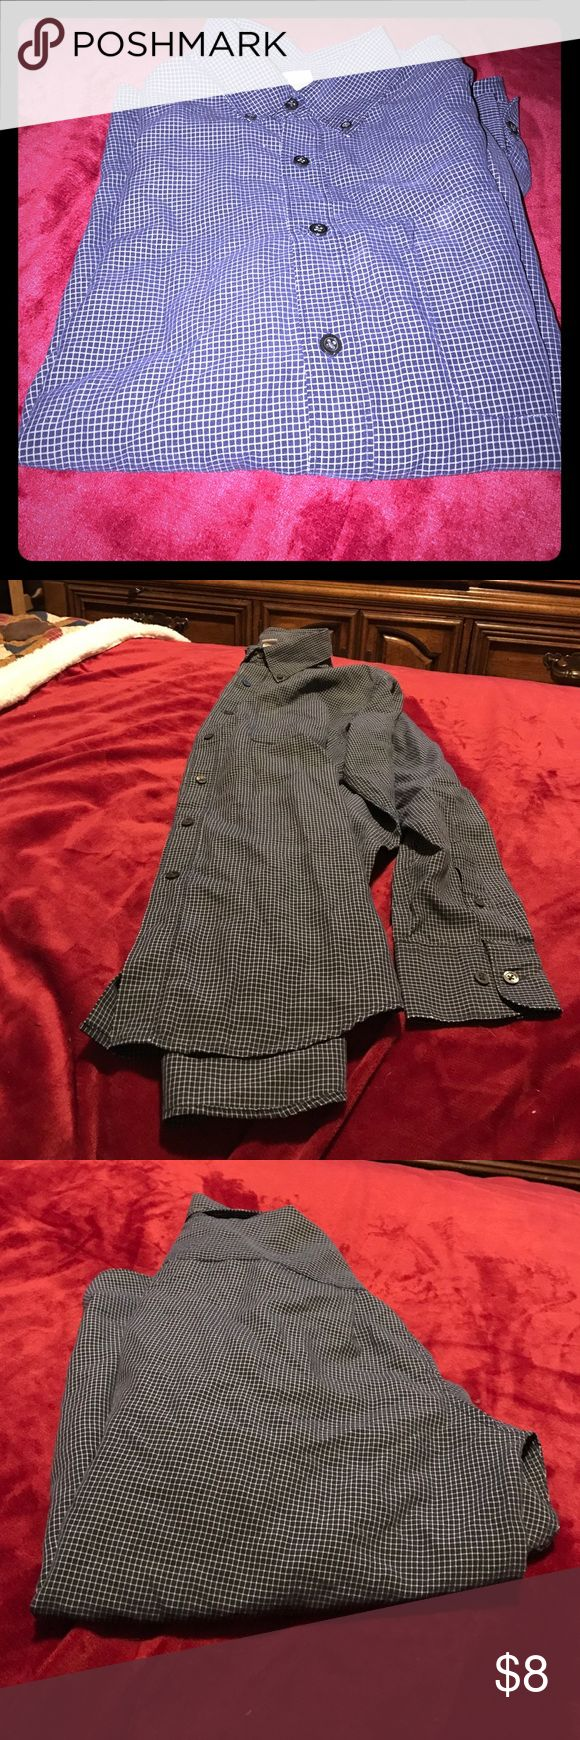 Great condition Men's dressy casual shirt. ❤ Nice shirt to dress up a bit. In great condition. Nice soft cotton. 😊 Merona Shirts Casual Button Down Shirts